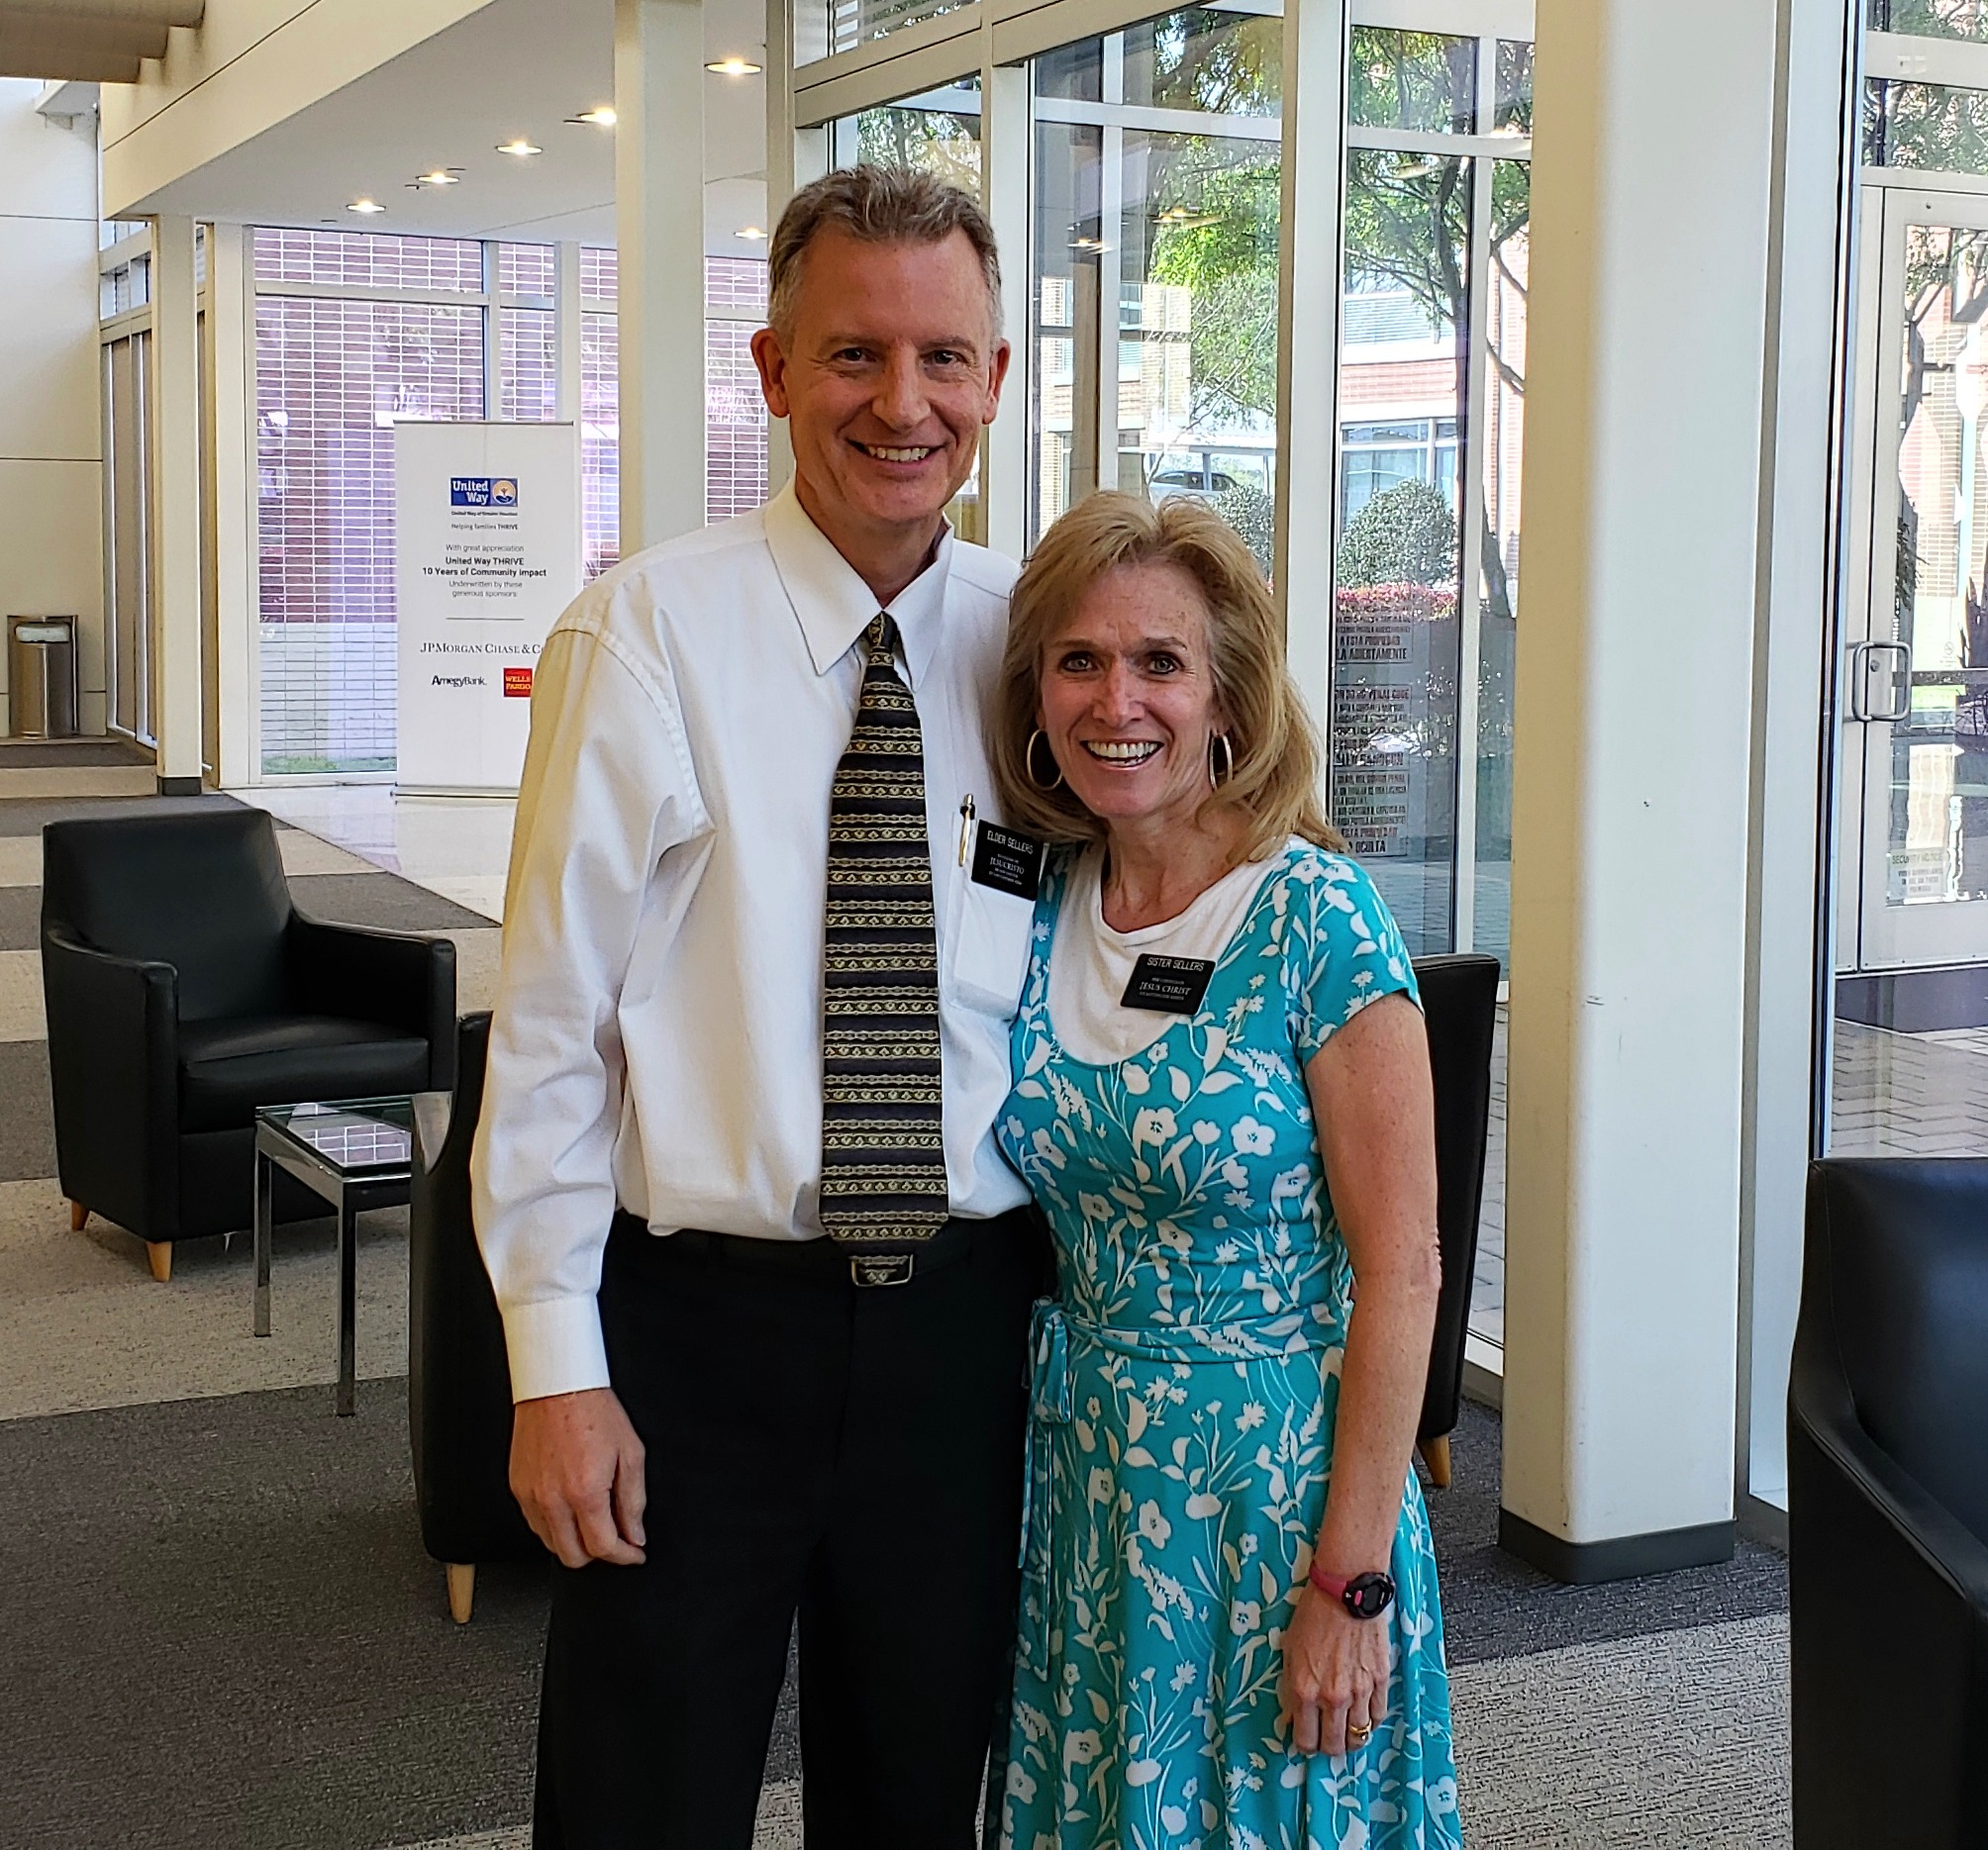 Elder Kory Sellers and Sister Diane Sellers after their final Longterm Recovery Steering Committee meeting at United Way of Greater Houston.